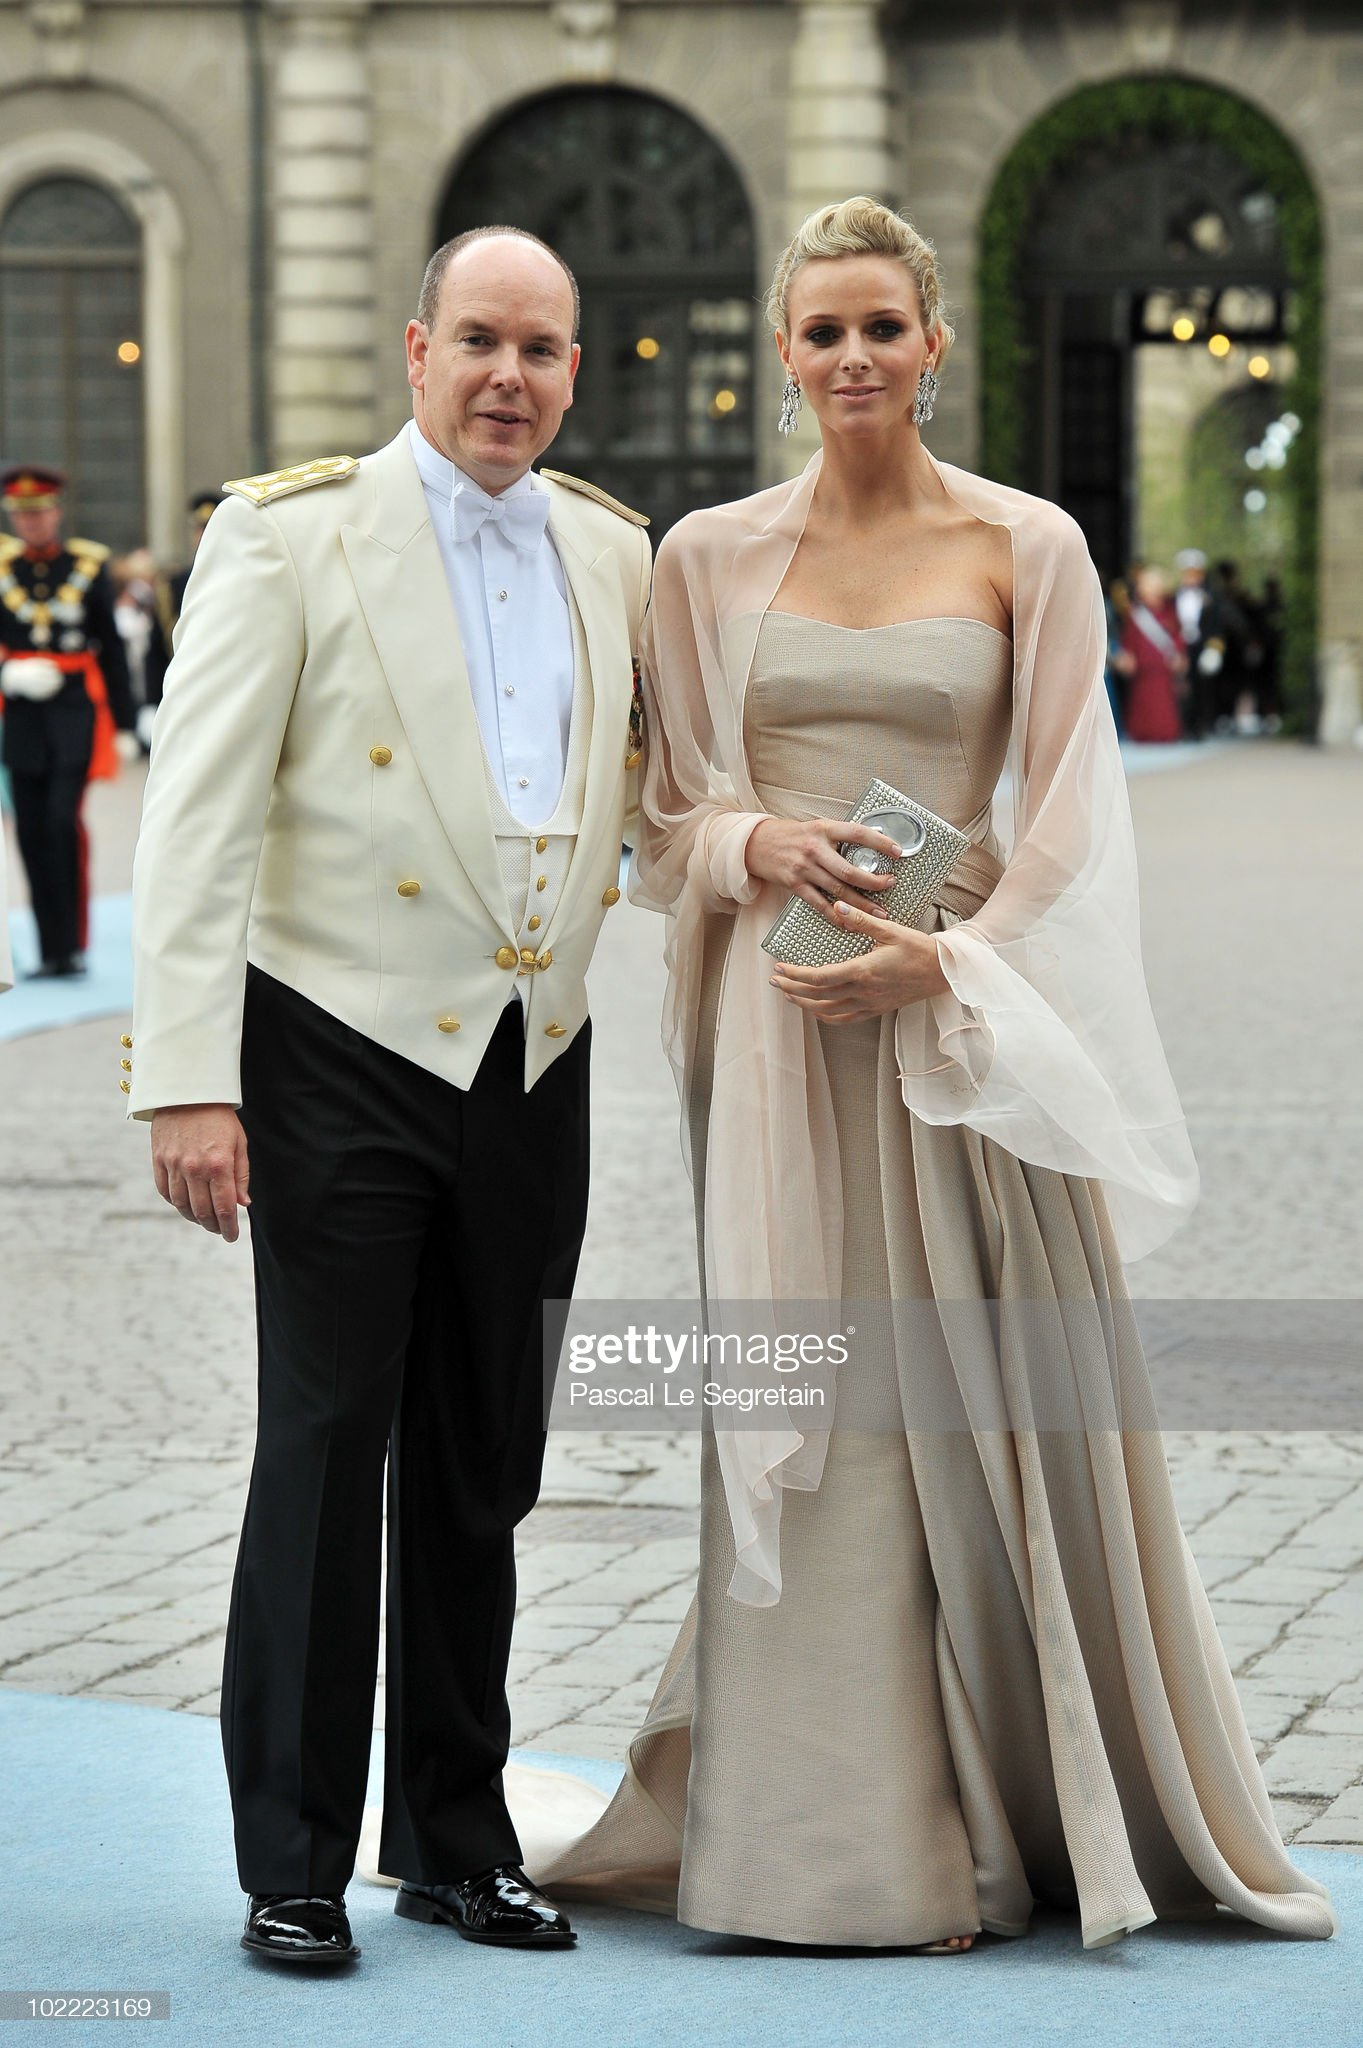 Wedding Of Swedish Crown Princess Victoria & Daniel Westling: Arrivals : News Photo